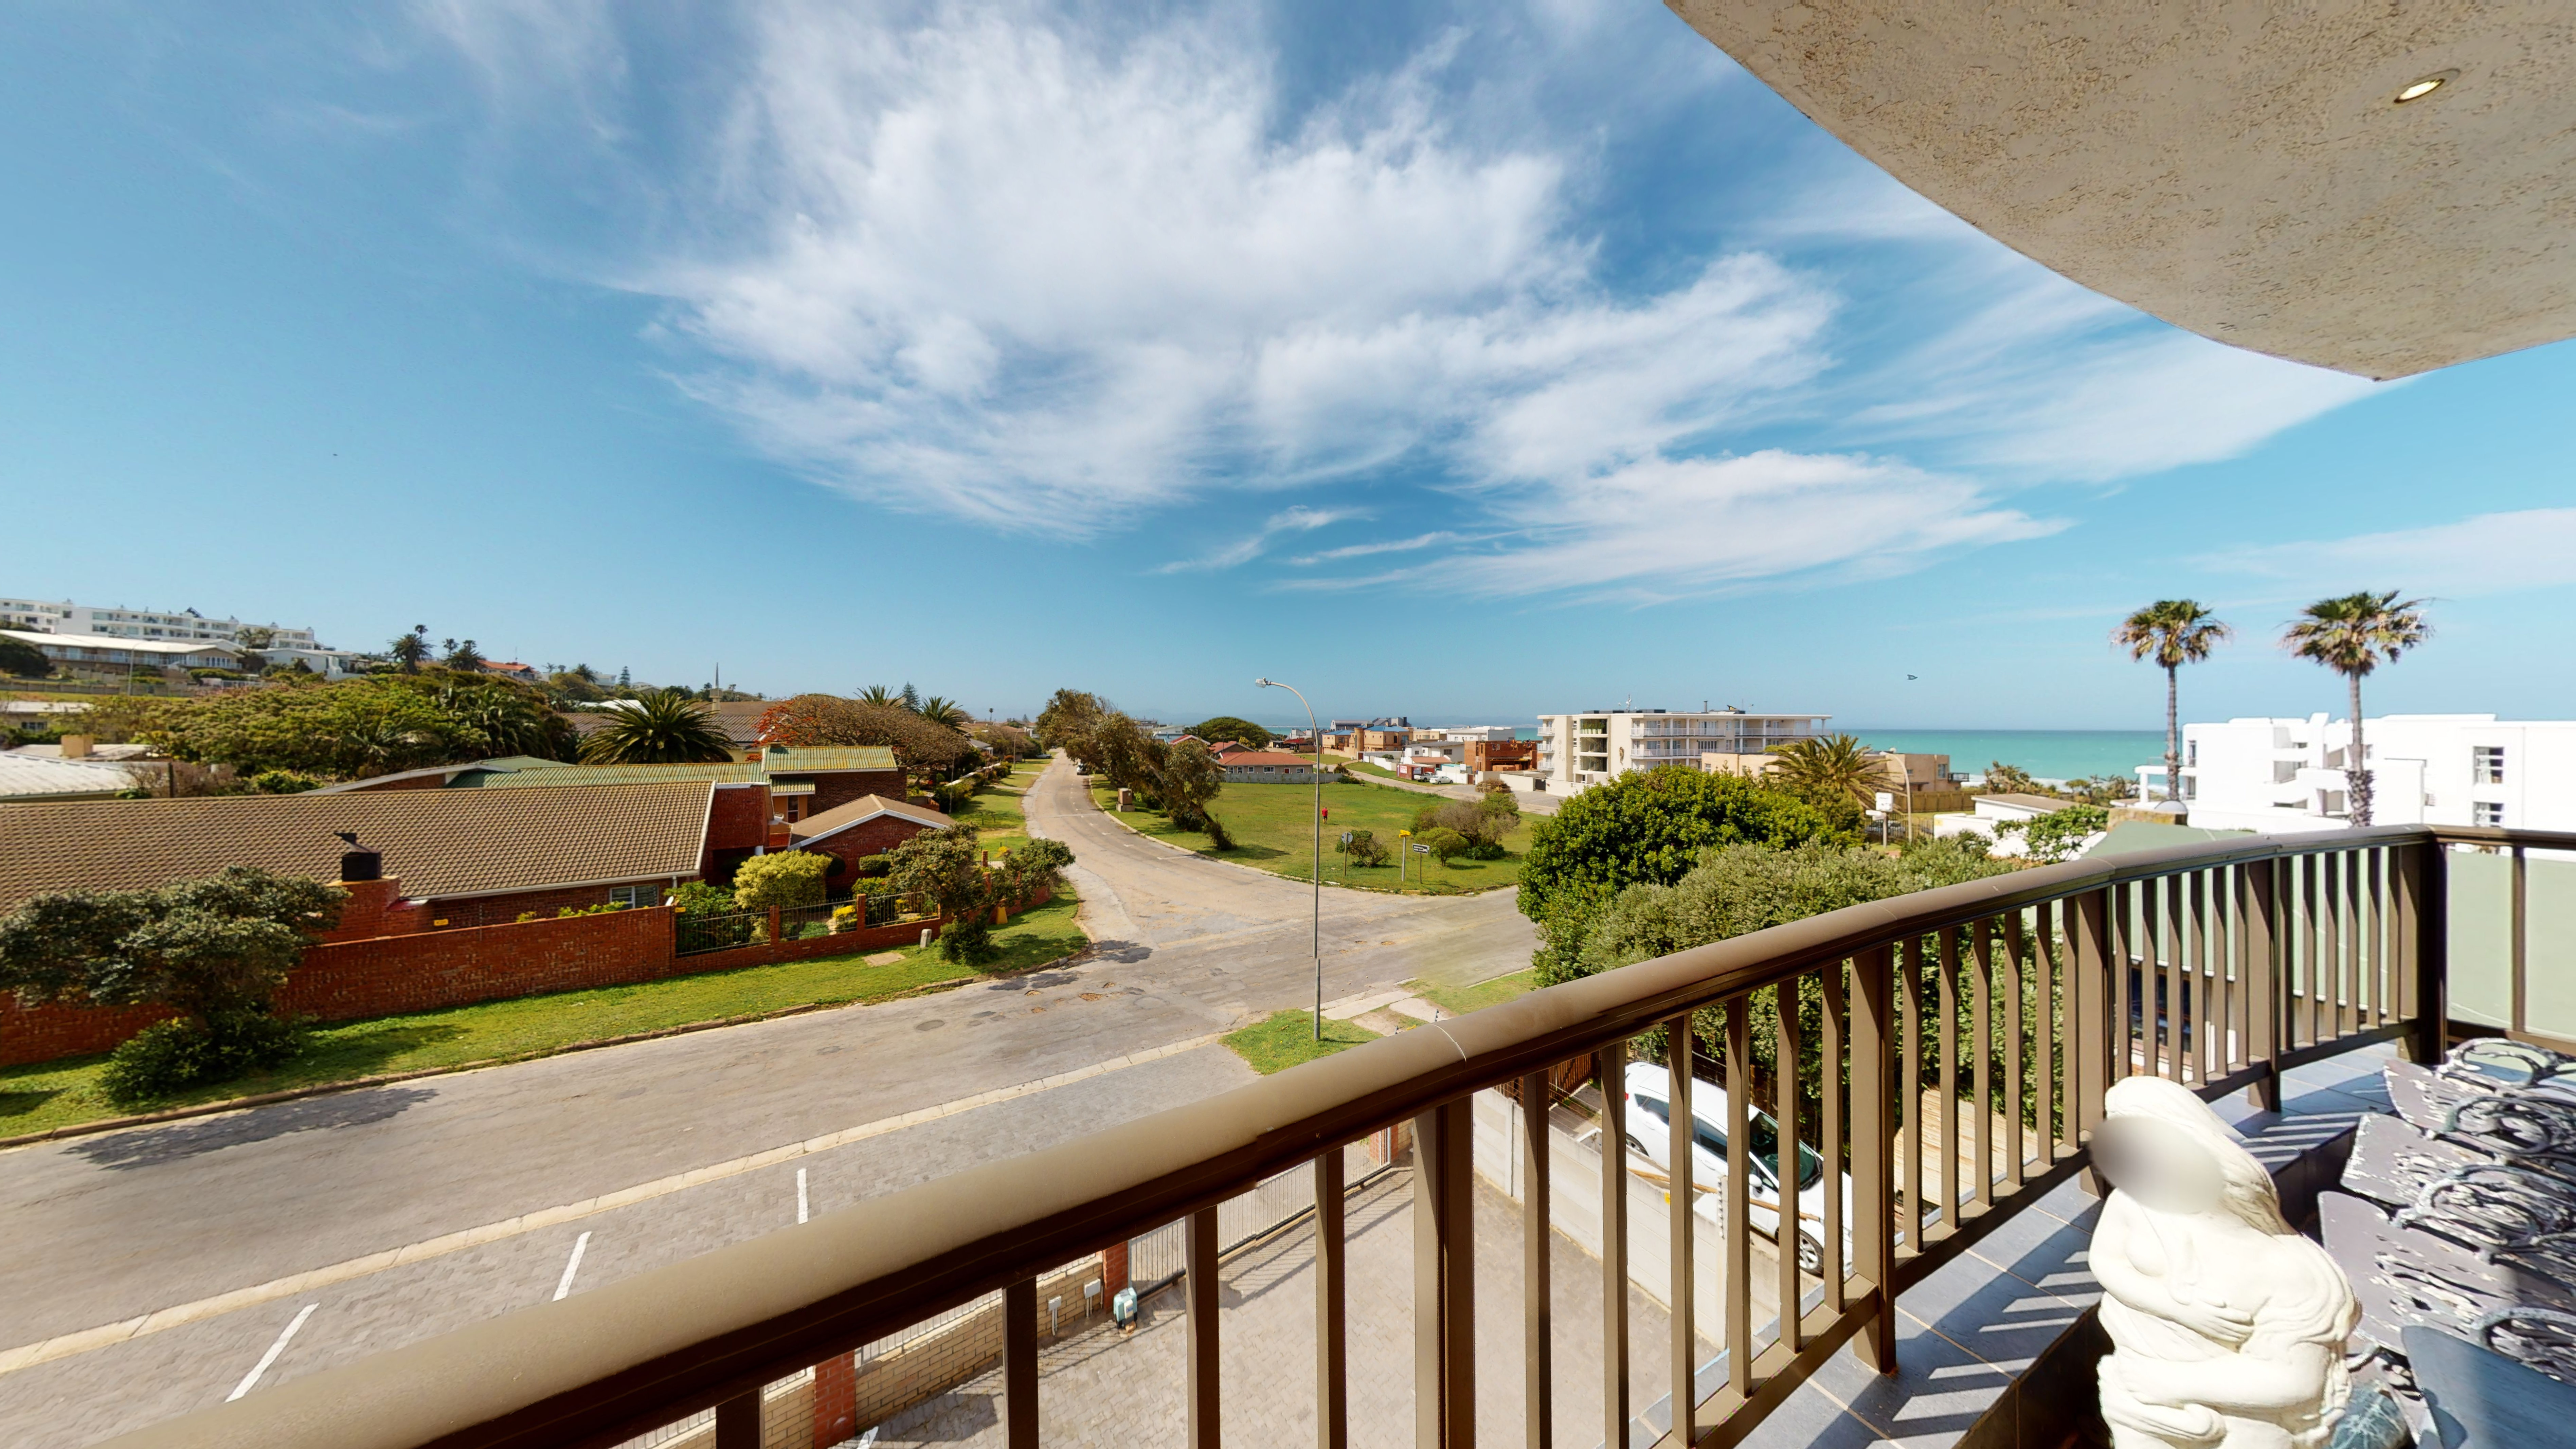 Milieu 2000 - 3 Bedroom Apartment For Sale in Jeffreys Bay Central